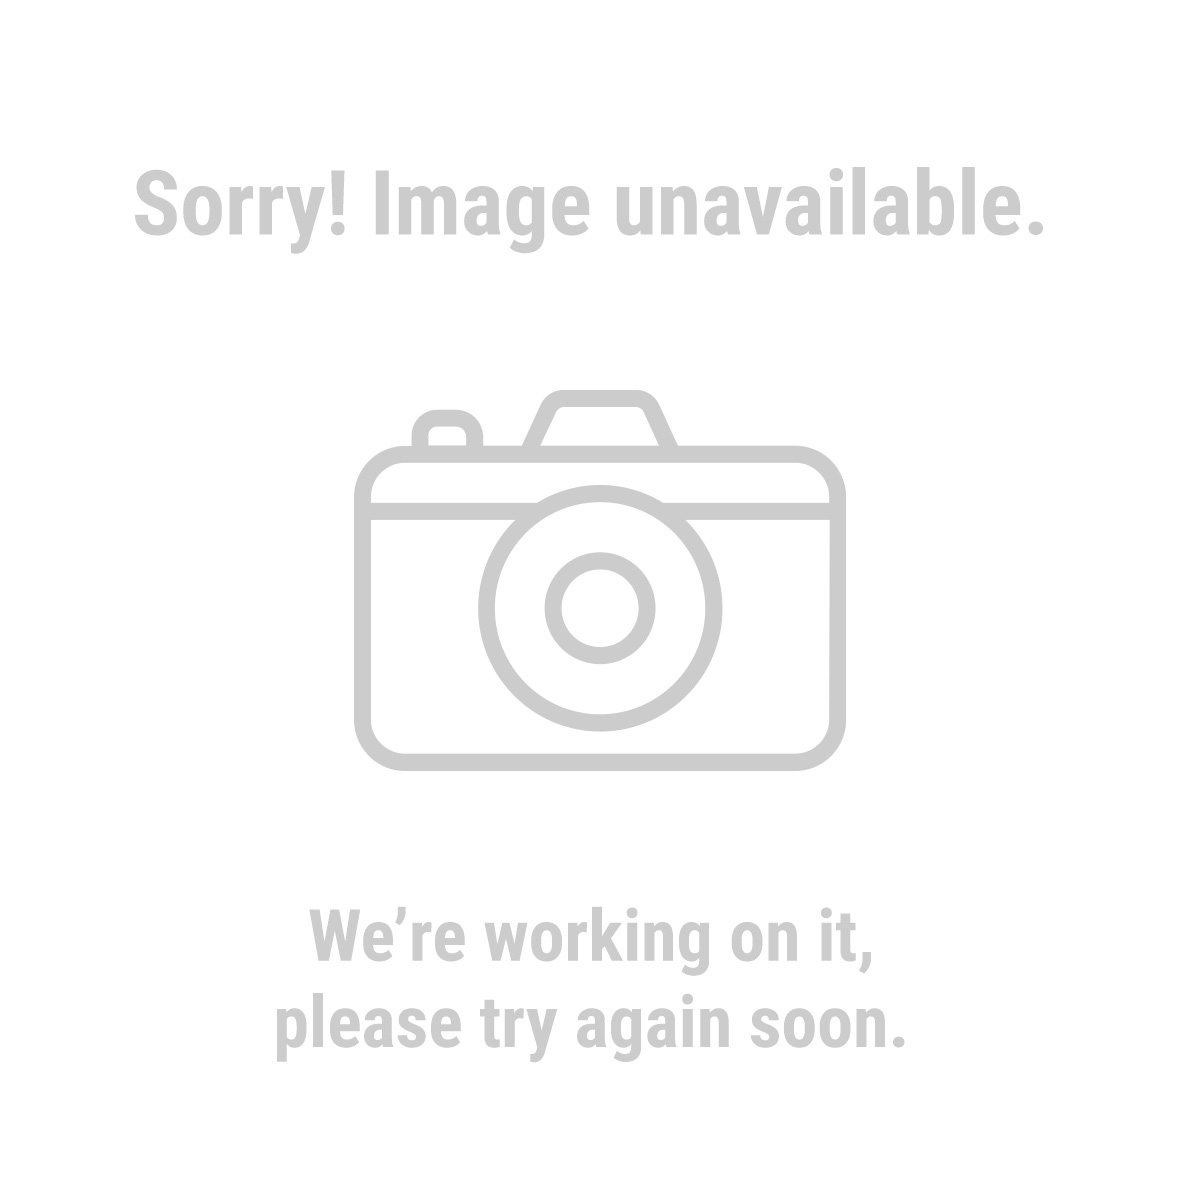 Central Machinery® 62266 Wet/Dry Shop Vacuum & Blower - 5 Gallon